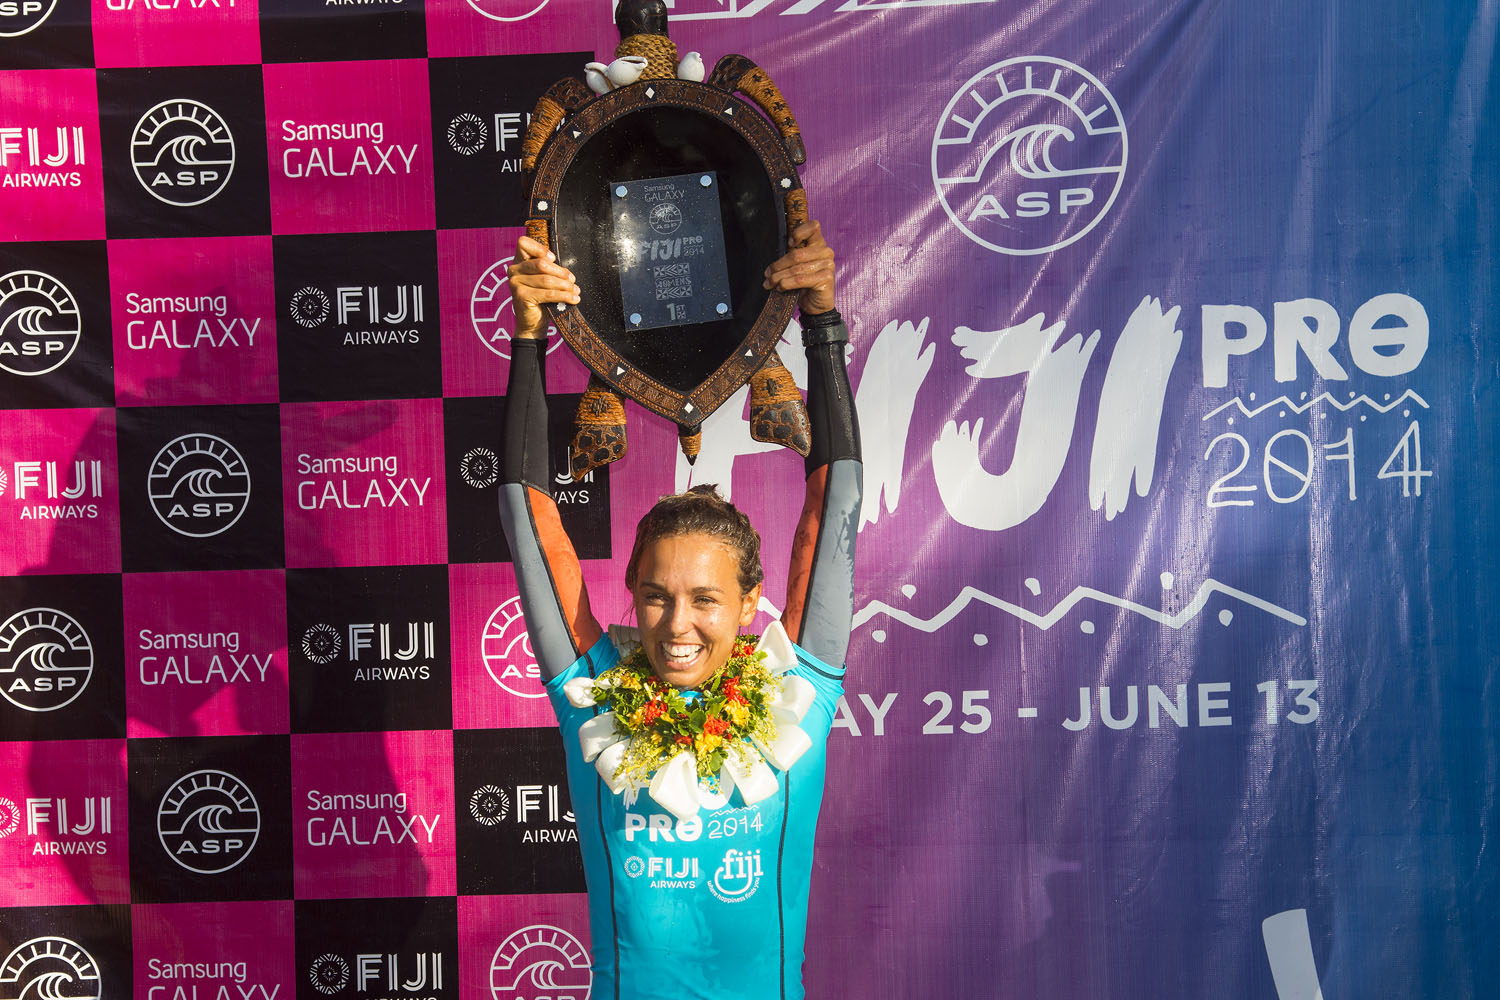 Sally Fitzgibbons stand victorious as the winner of the 2014 Women's Fiji Pro on May 29, 2014 in Tavarua, Fiji.